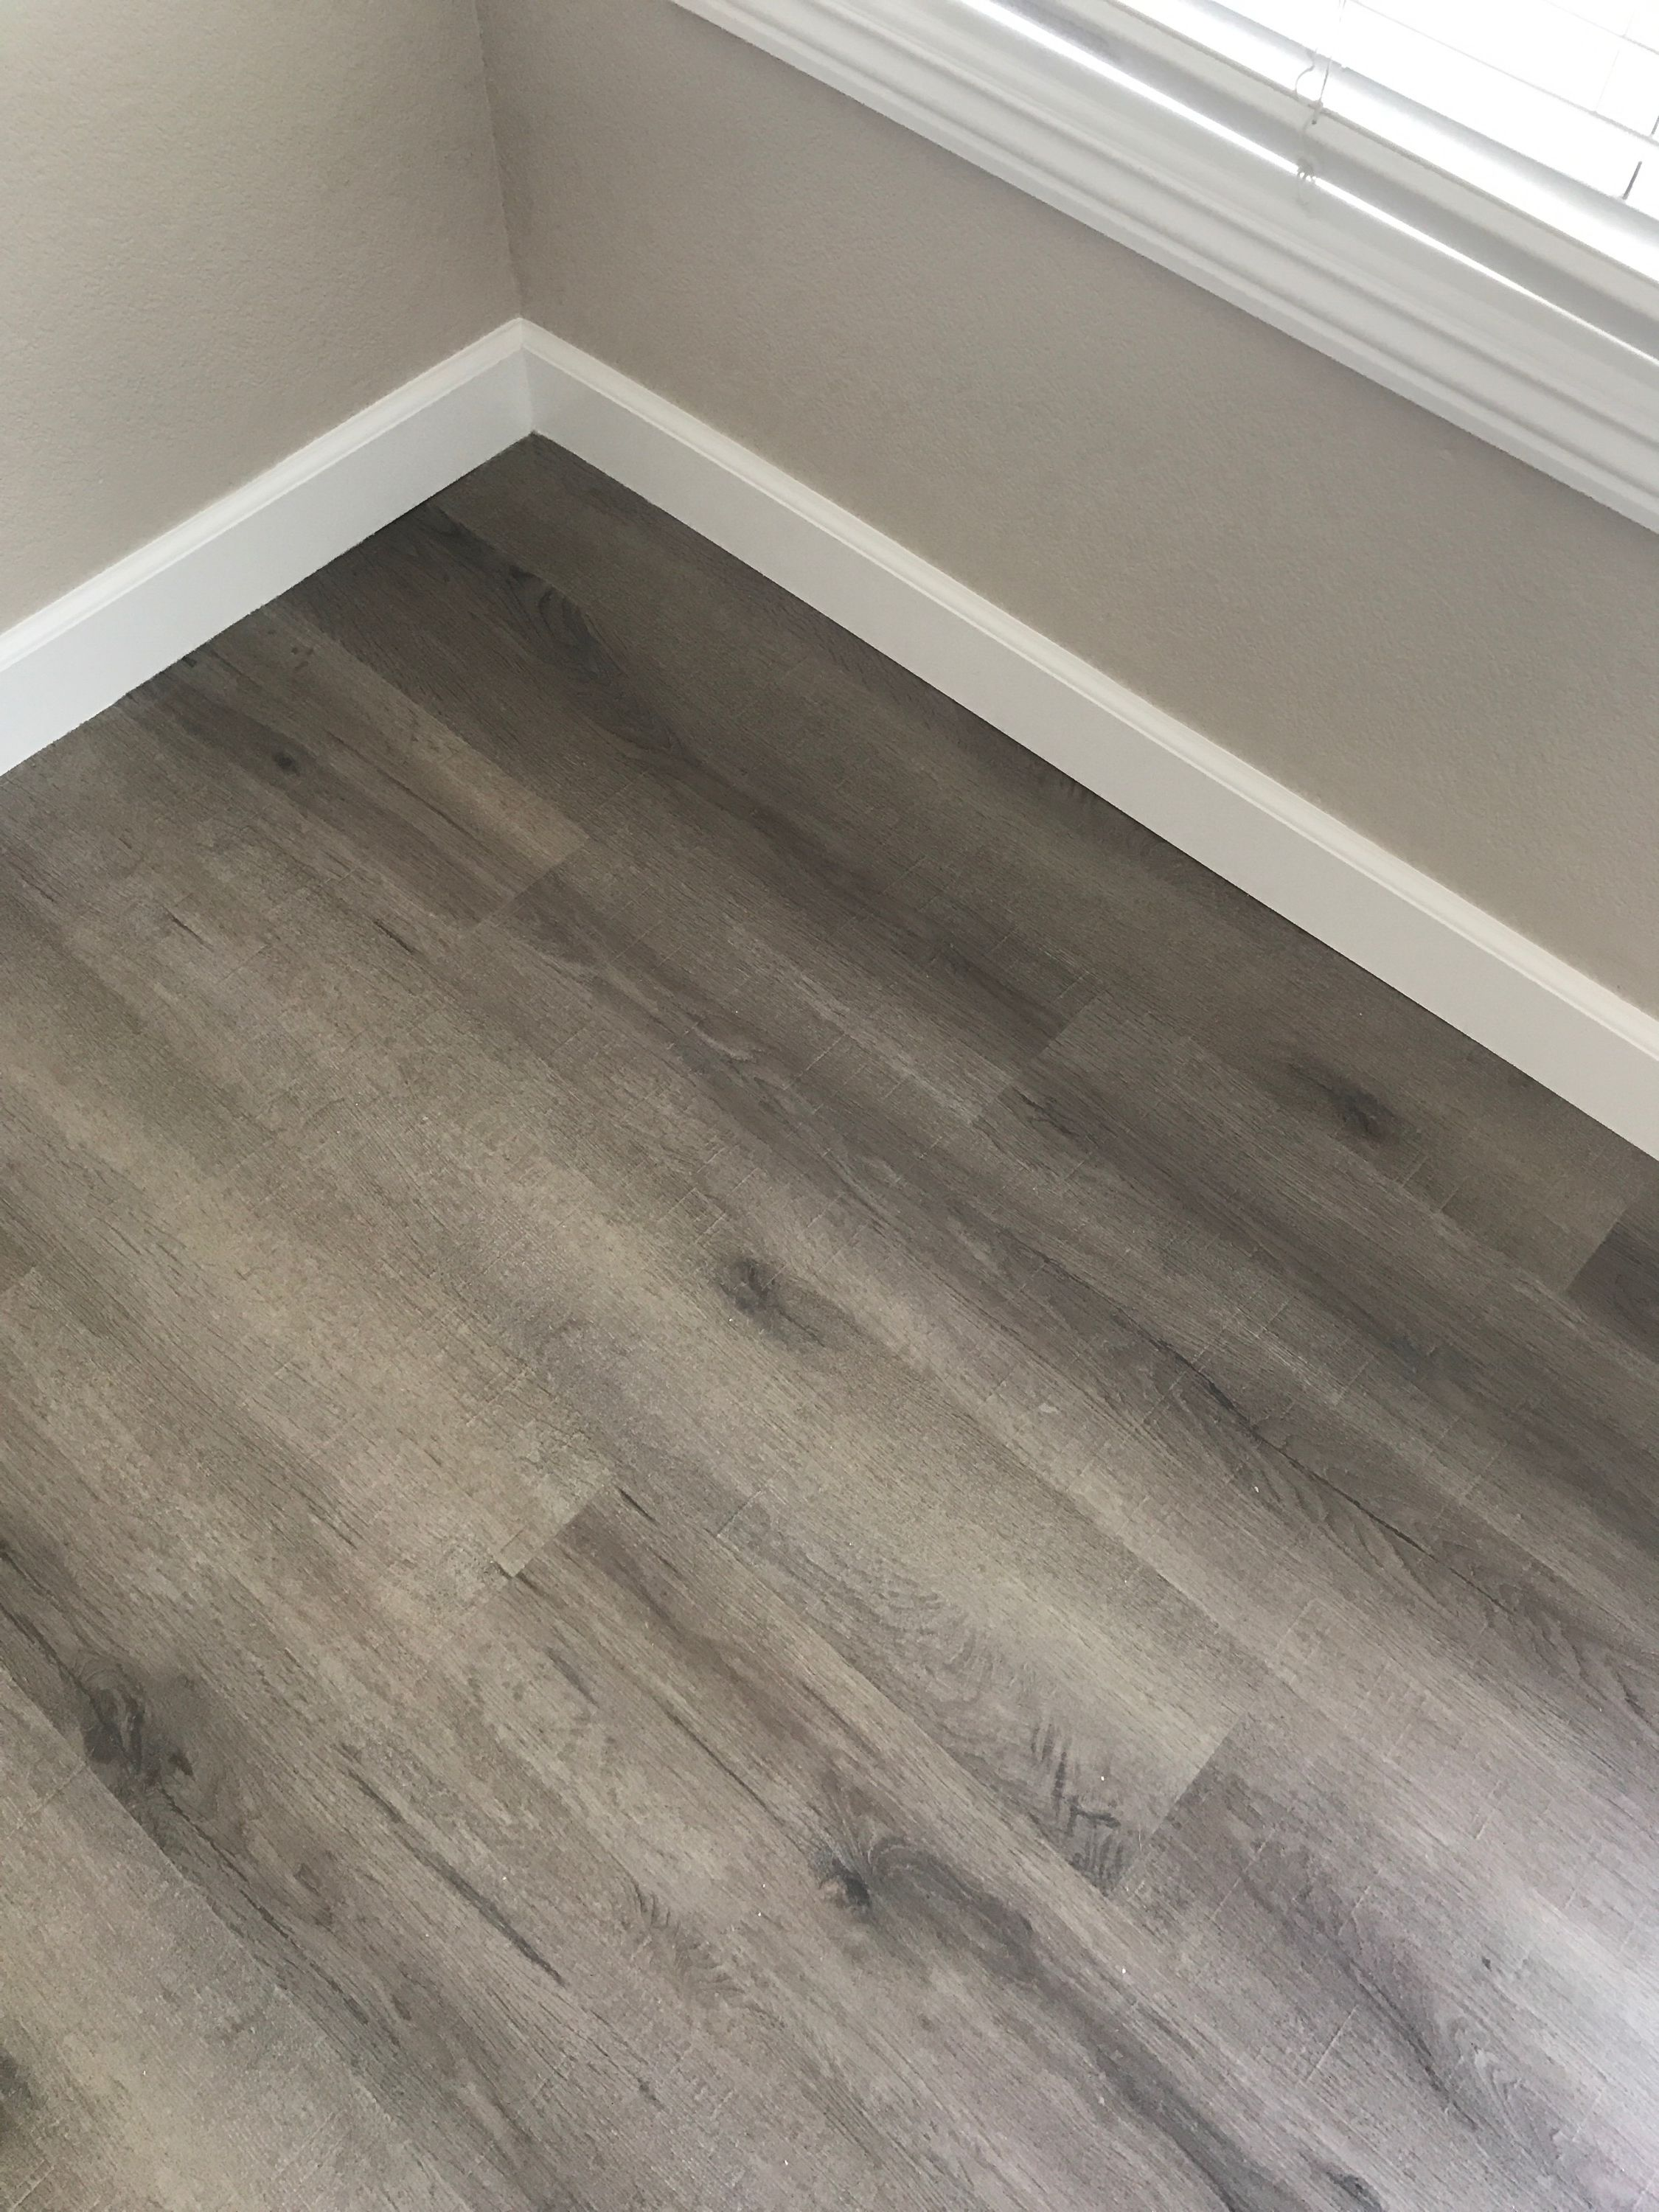 products to of flooring the classic floor measurements american x pergo red idea laminate fresh oak search harmonics pertaining home cottage awesome catalog